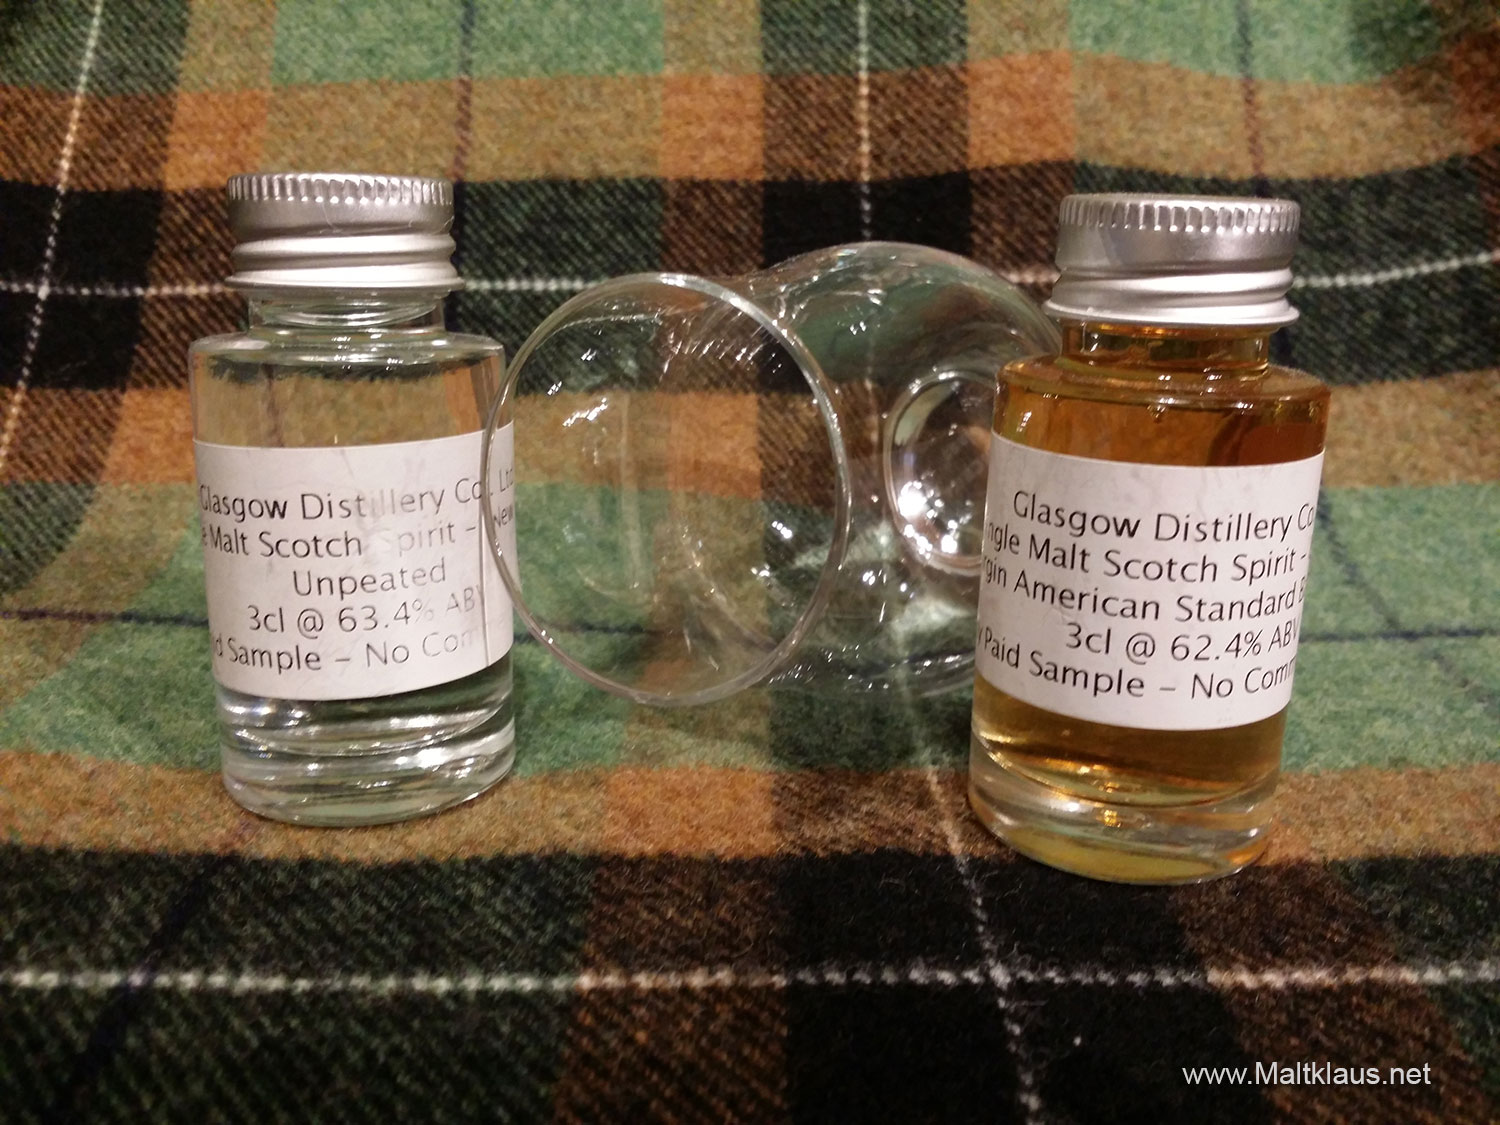 Glasgow Distillery new make + 8-month-old spirit